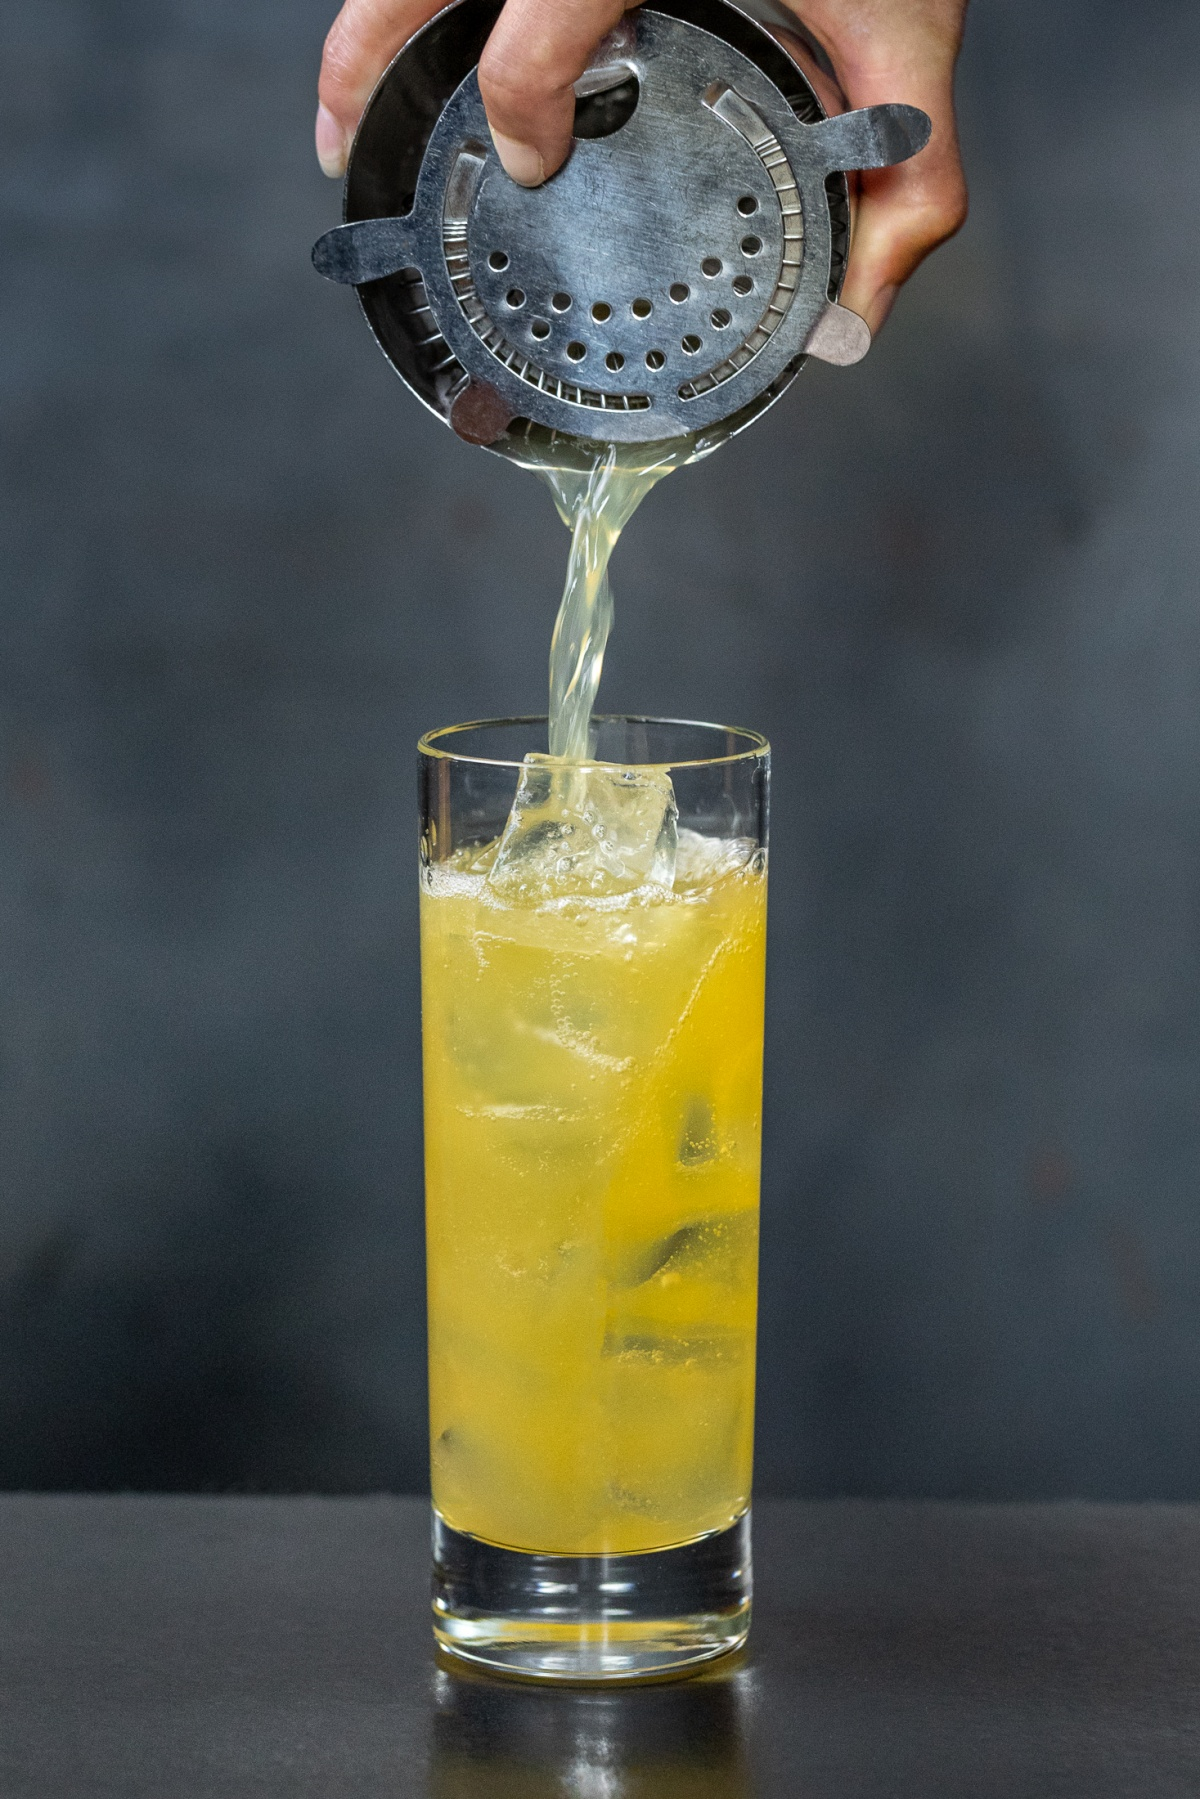 09-2019_OTOTO_Cocktail_Final Images_Web-Res_01